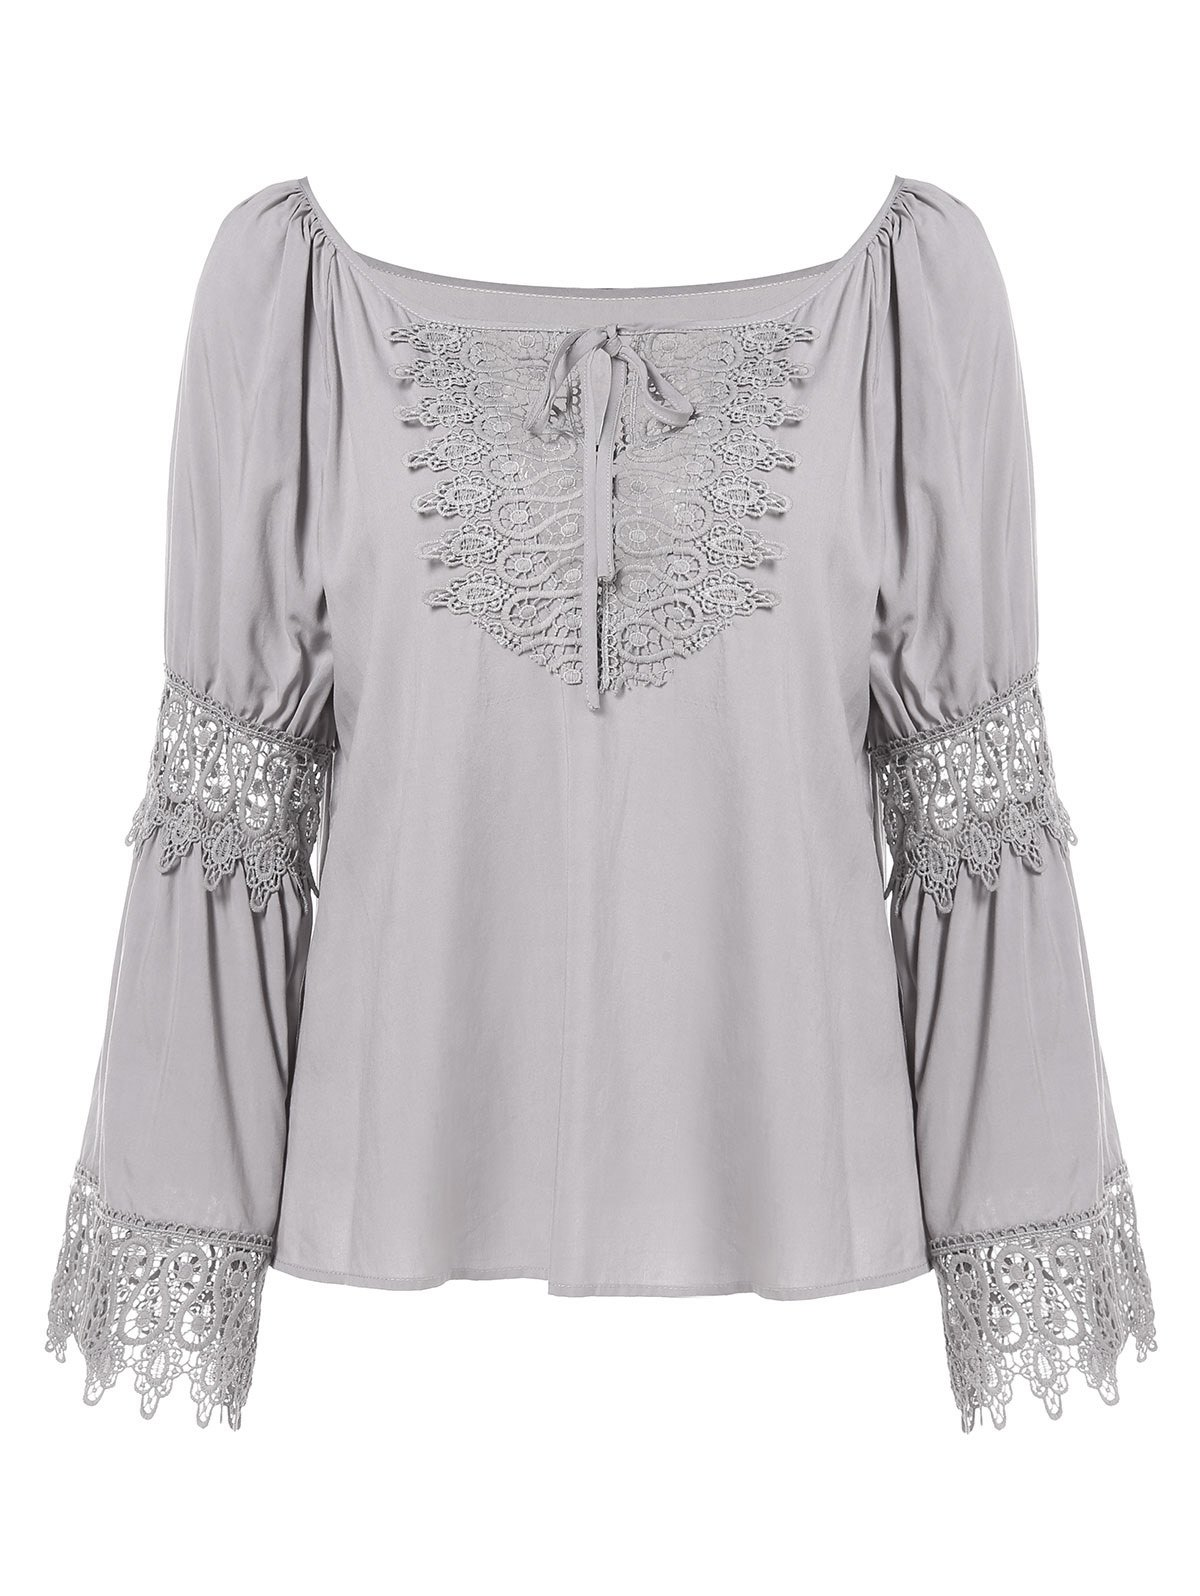 Discount Lace Panel Long Sleeve Blouse with Tie